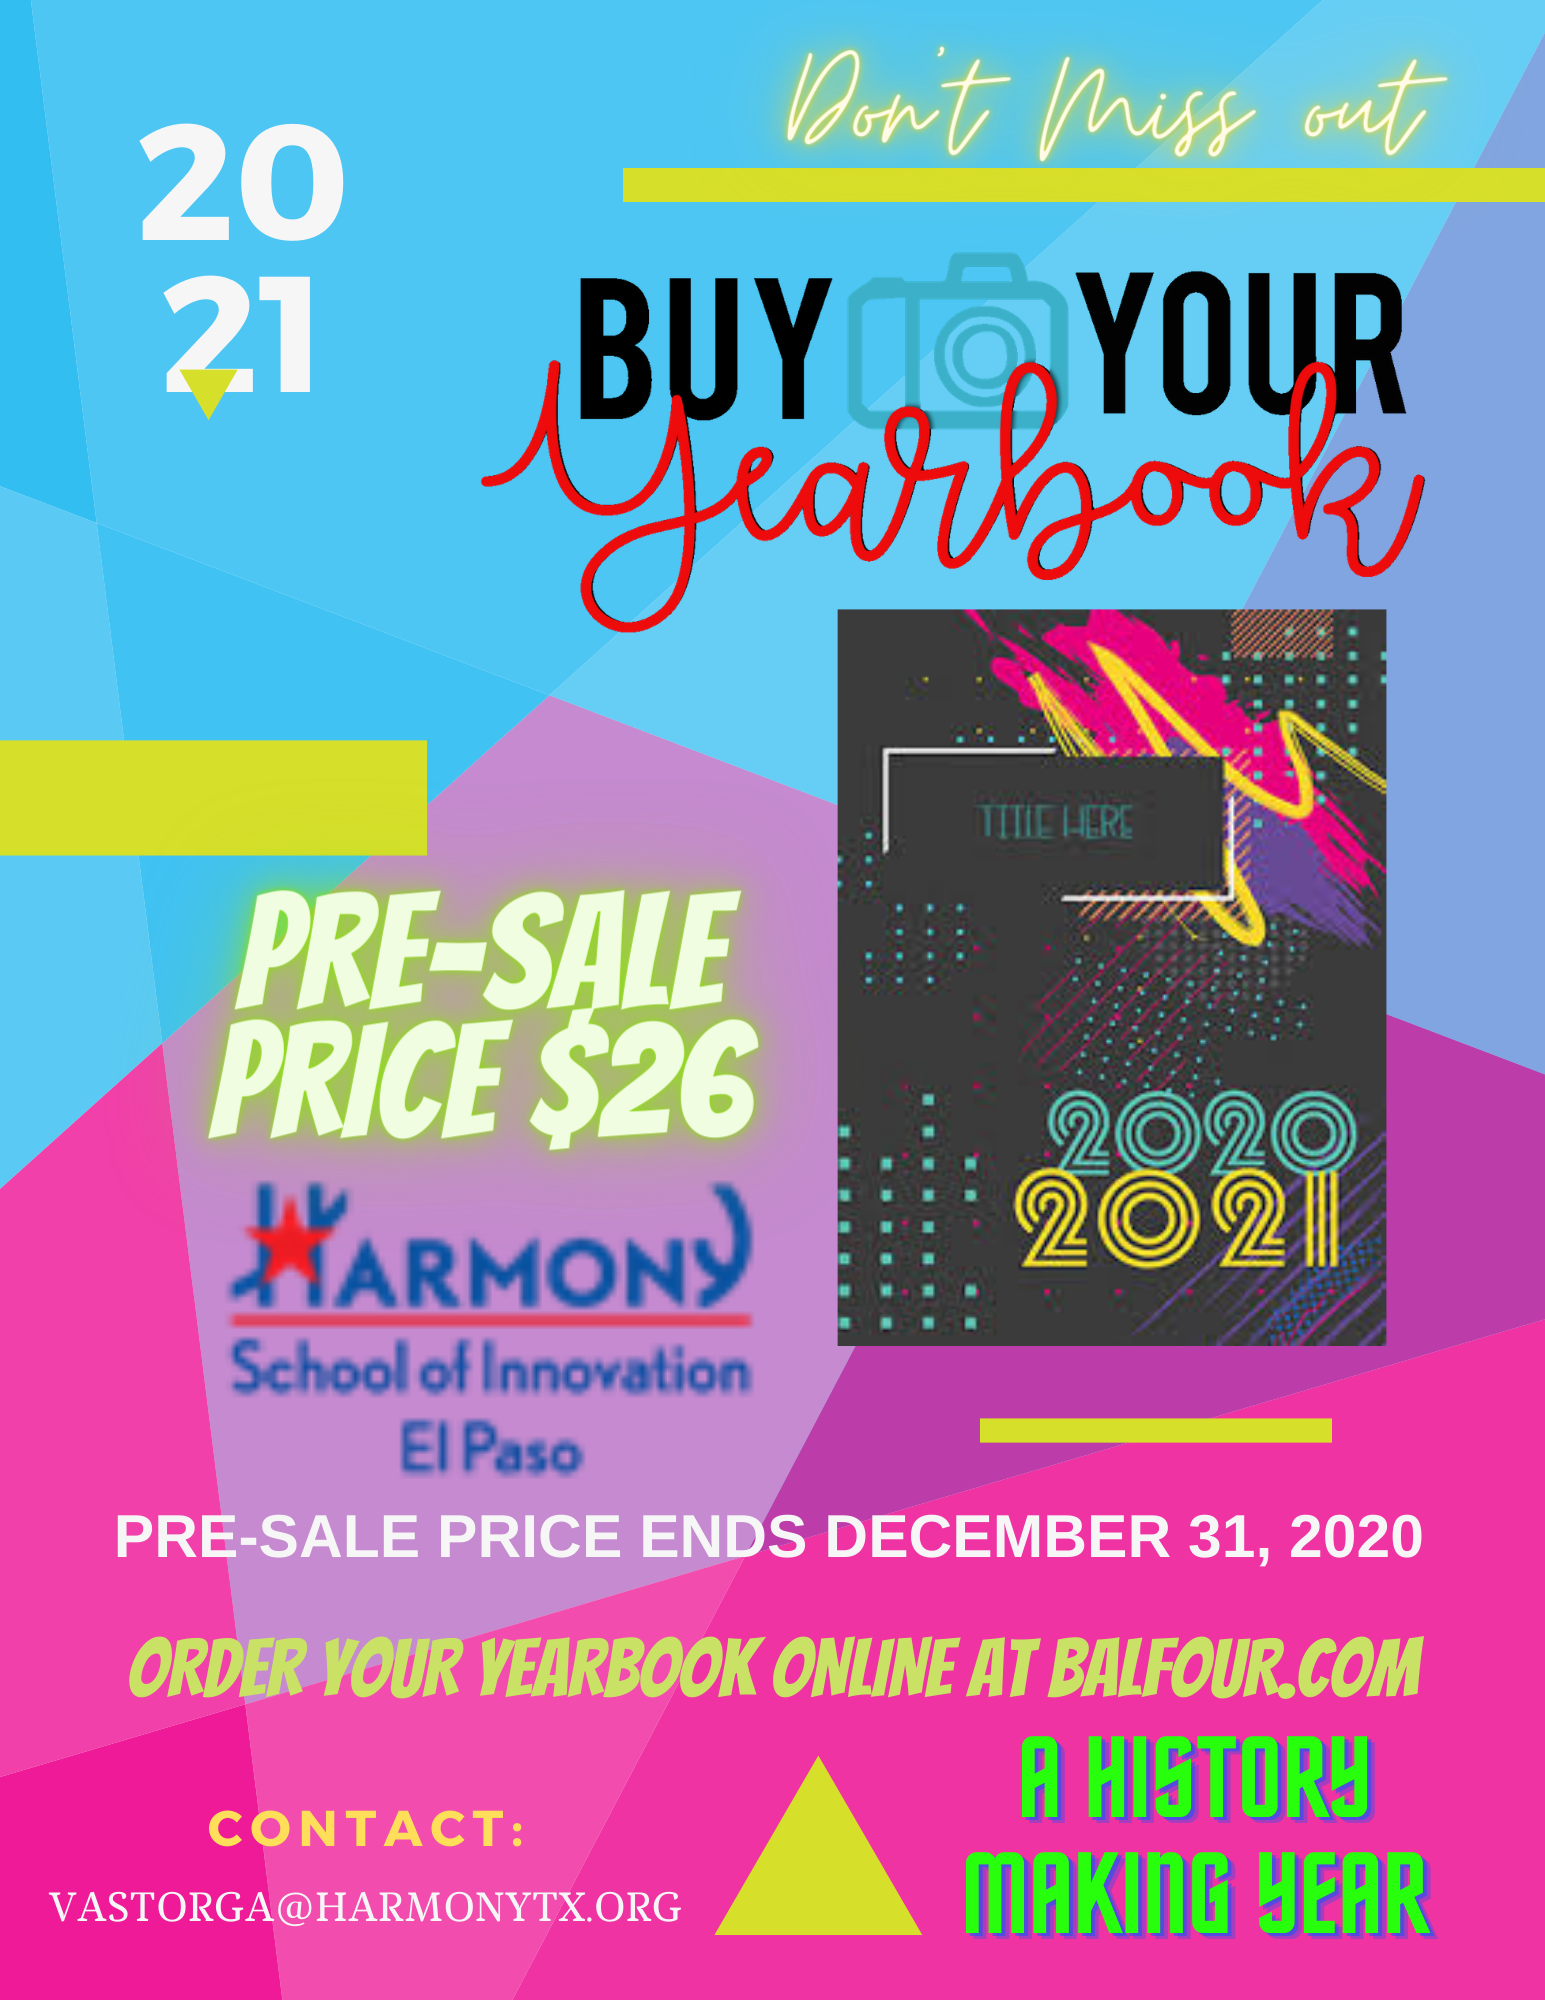 An image of the 2020-21 Yearbook Pre-Sale Flyer